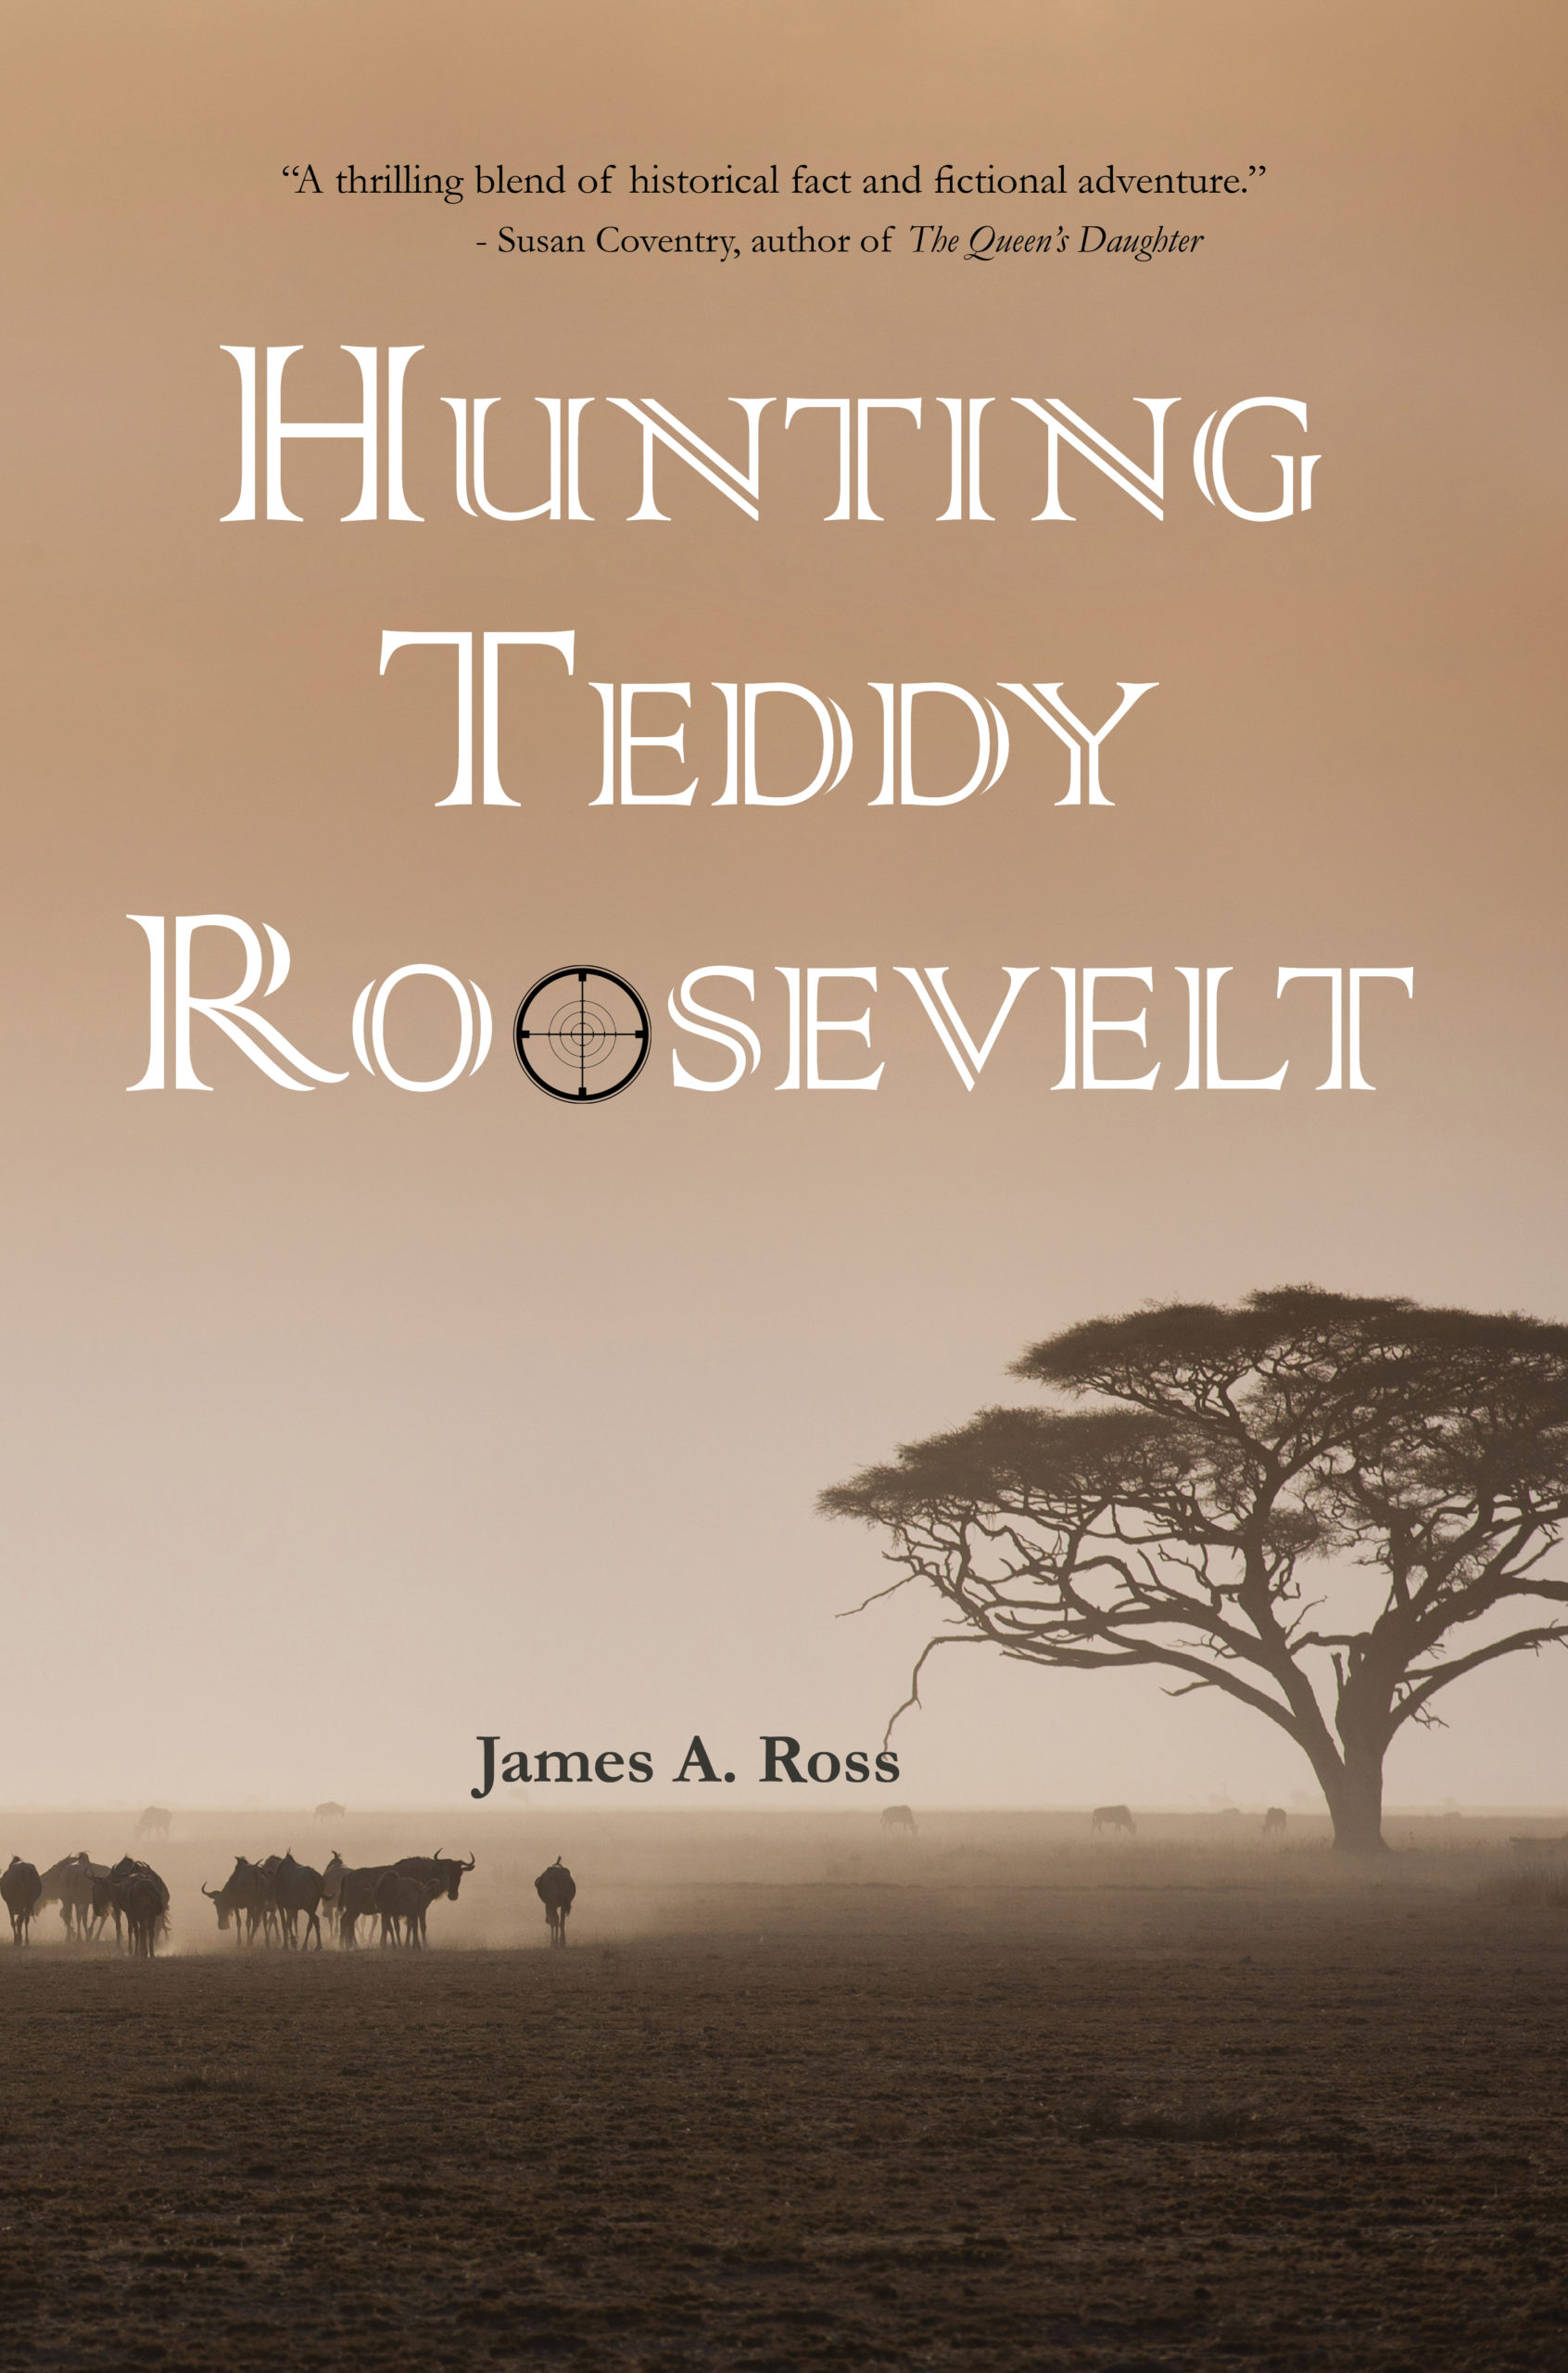 Hunting Teddy Roosevelt